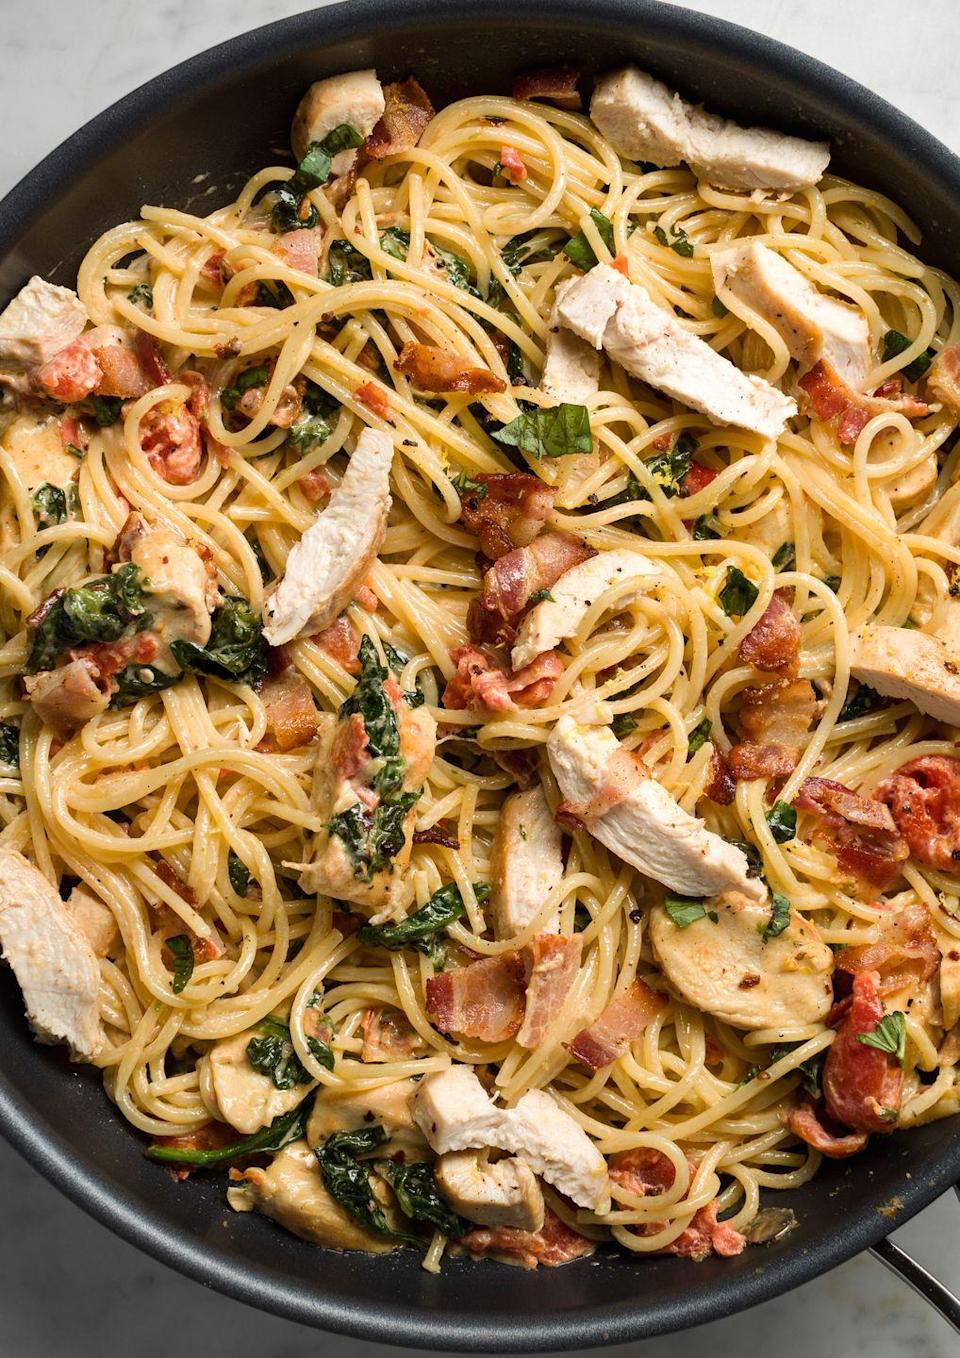 """<p>Loaded with sautéed chicken breasts and crispy bacon, this hearty spaghetti recipe will please even the pickiest eaters.</p><p>Get the from <a href=""""https://www.delish.com/cooking/recipe-ideas/recipes/a45774/chicken-bacon-and-spinach-spaghetti-recipe/"""" rel=""""nofollow noopener"""" target=""""_blank"""" data-ylk=""""slk:Delish"""" class=""""link rapid-noclick-resp"""">Delish</a>. </p>"""